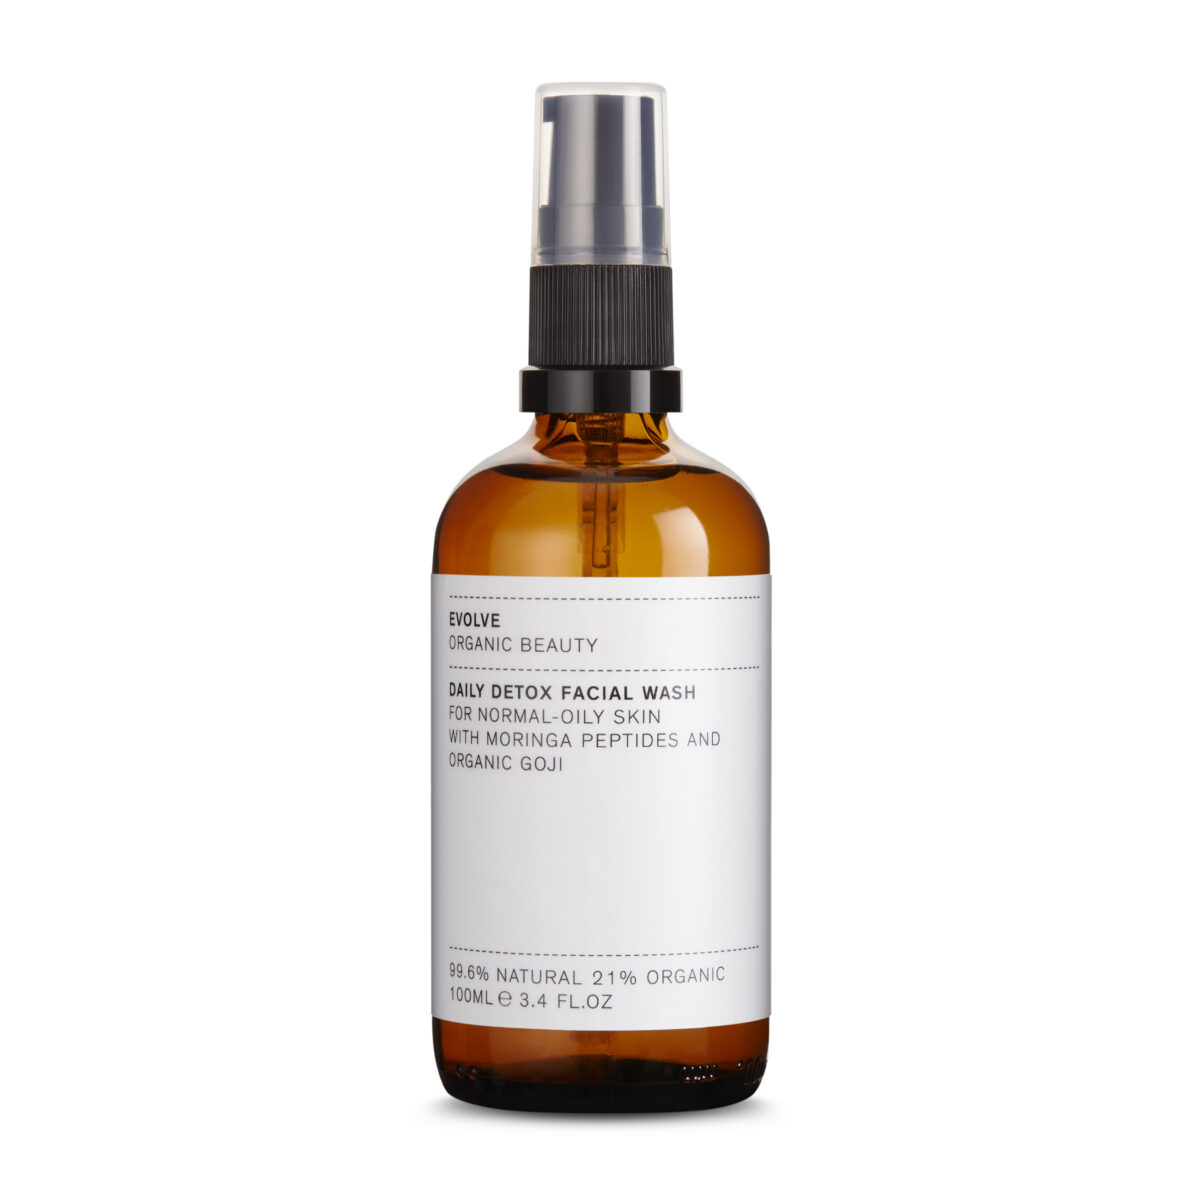 DAILY DETOX FACIAL WASH EVOLVE ORGANIC BEAUTY